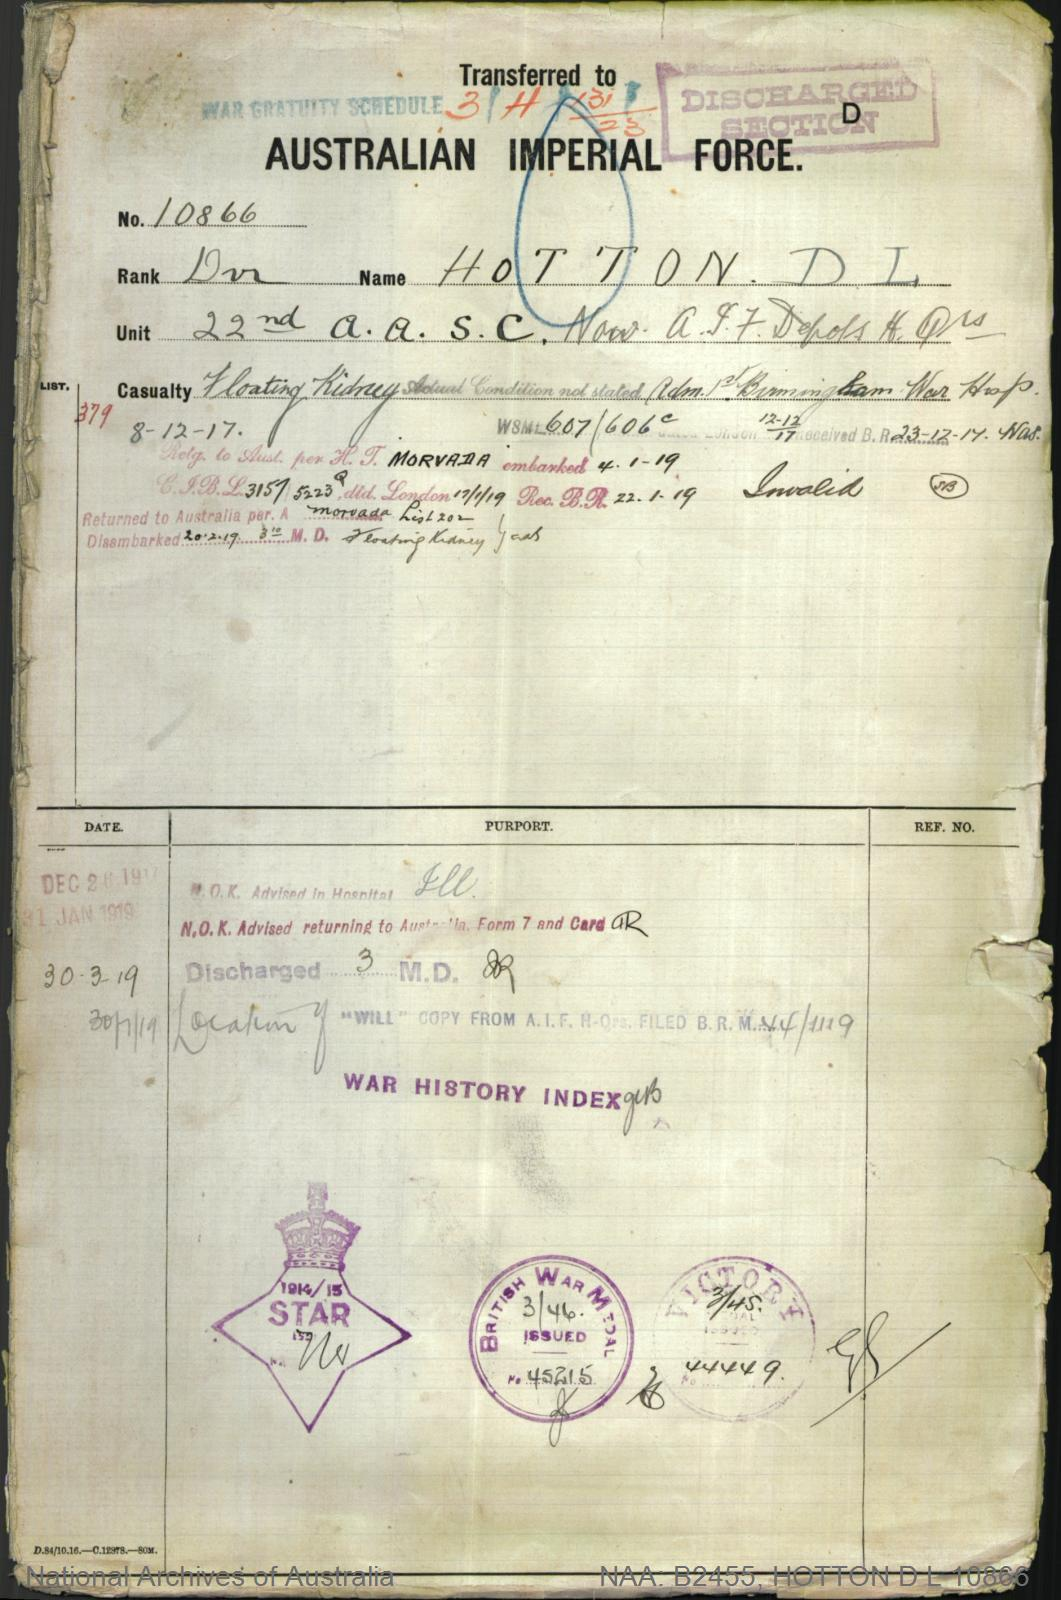 HOTTON David Leonard : Service Number - 10866 : Place of Birth - Heatherton Vic : Place of Enlistment - Melbourne Vic : Next of Kin - (Father) HOTTON Peter